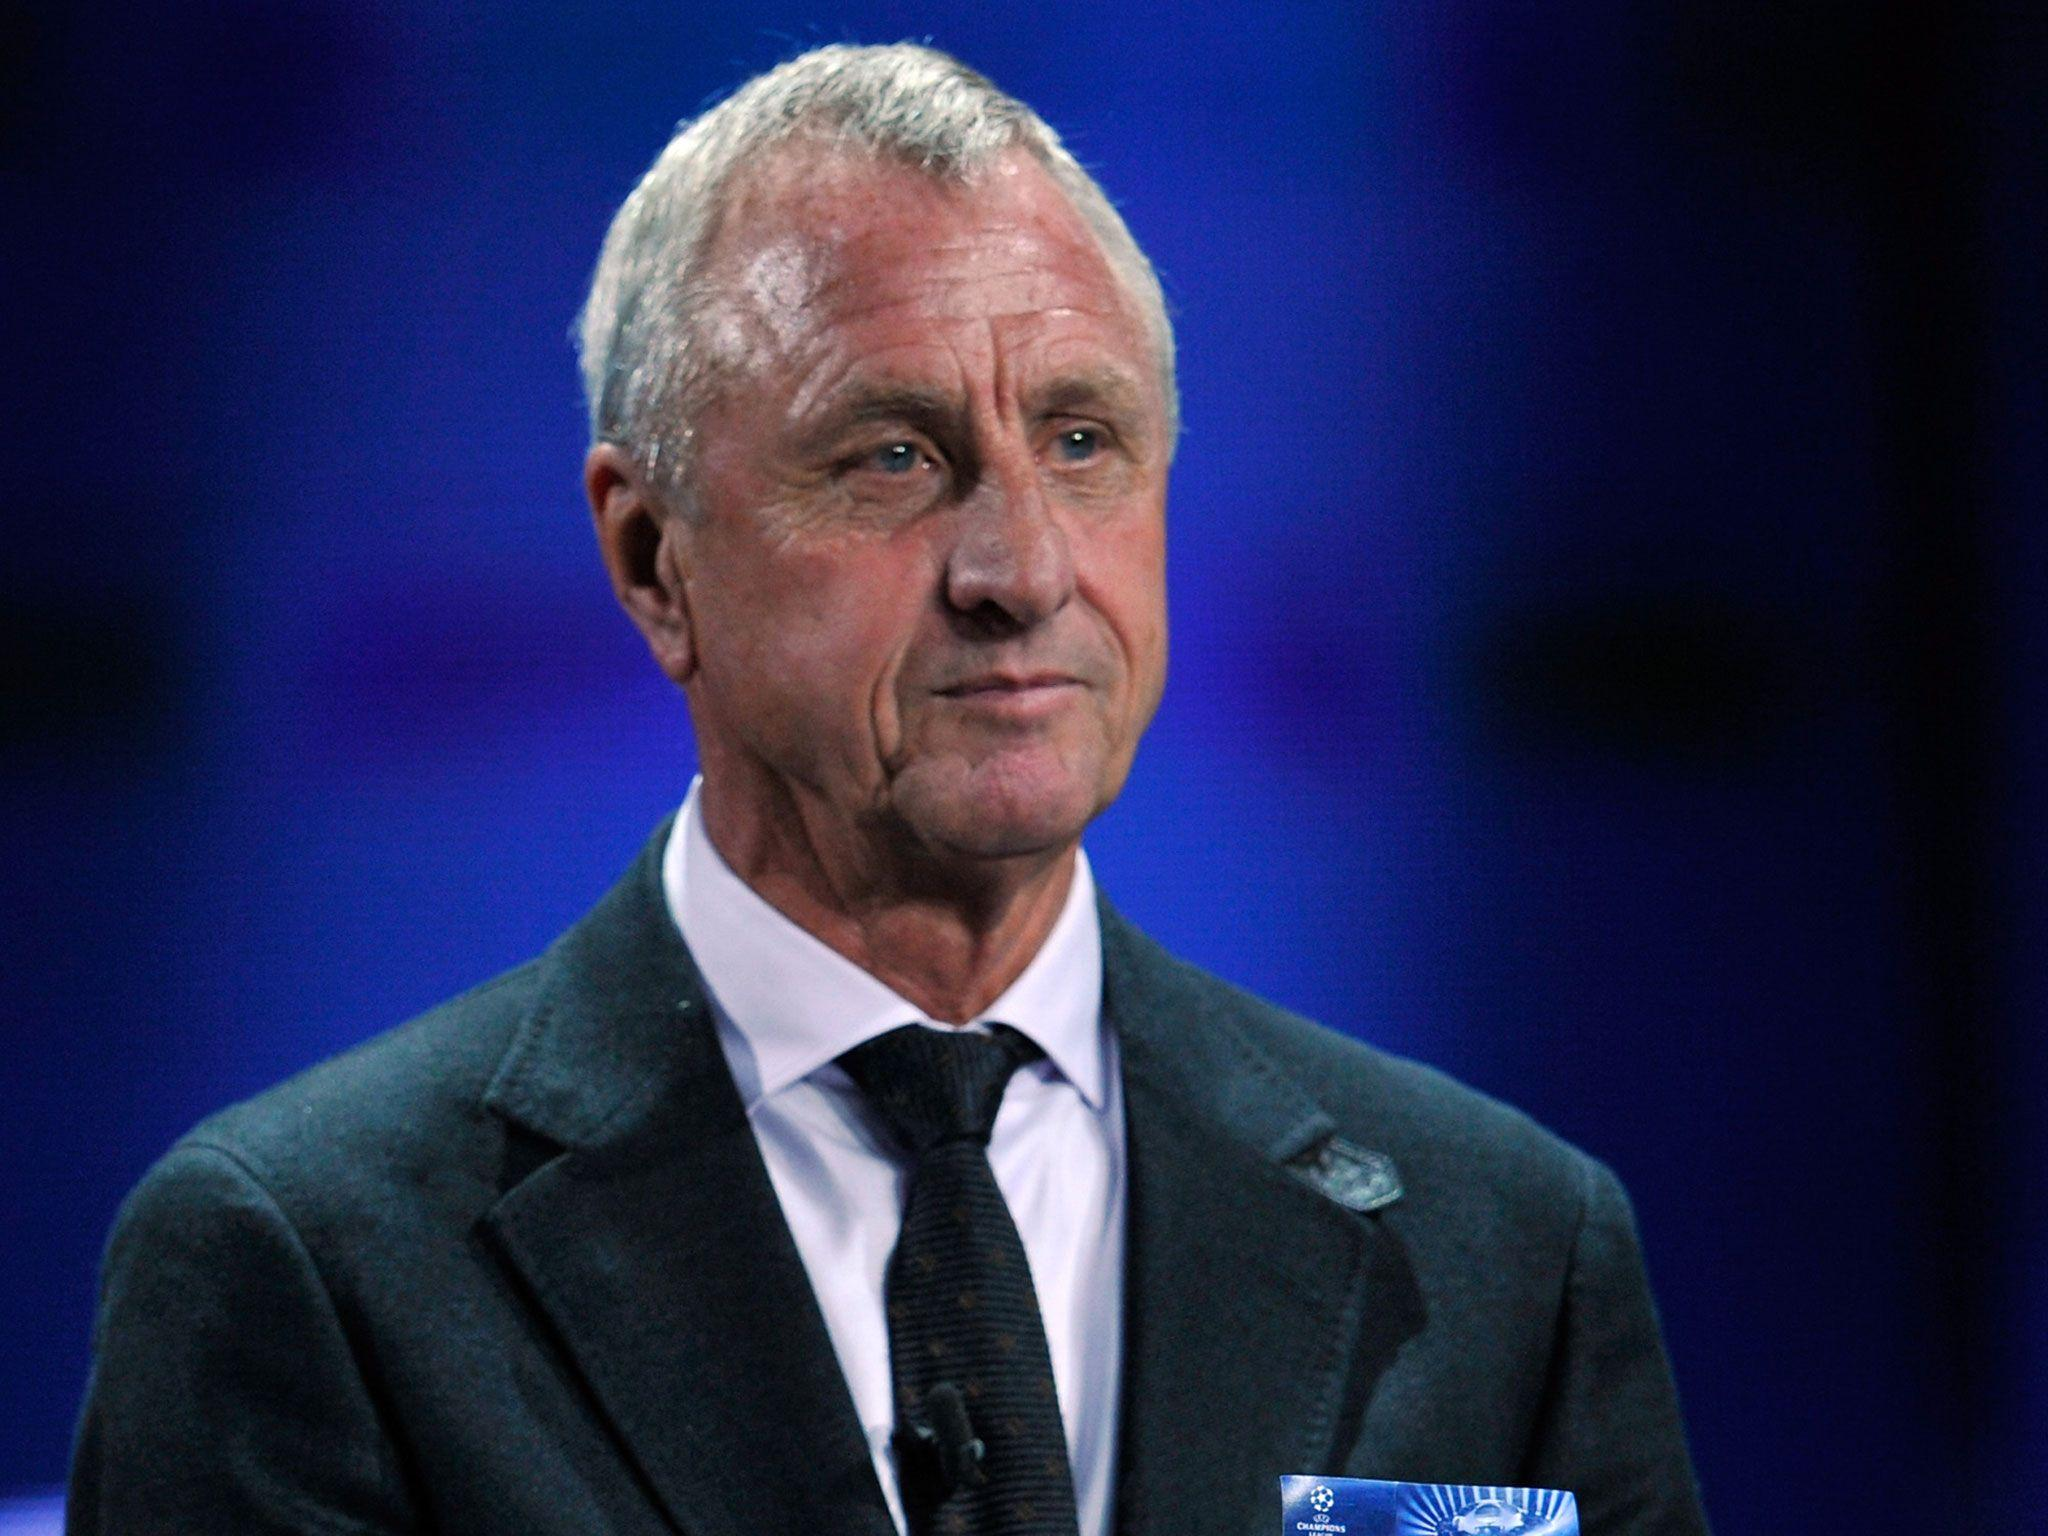 Barcelona legend Johan Cruyff reveals 'disappointment' that lung